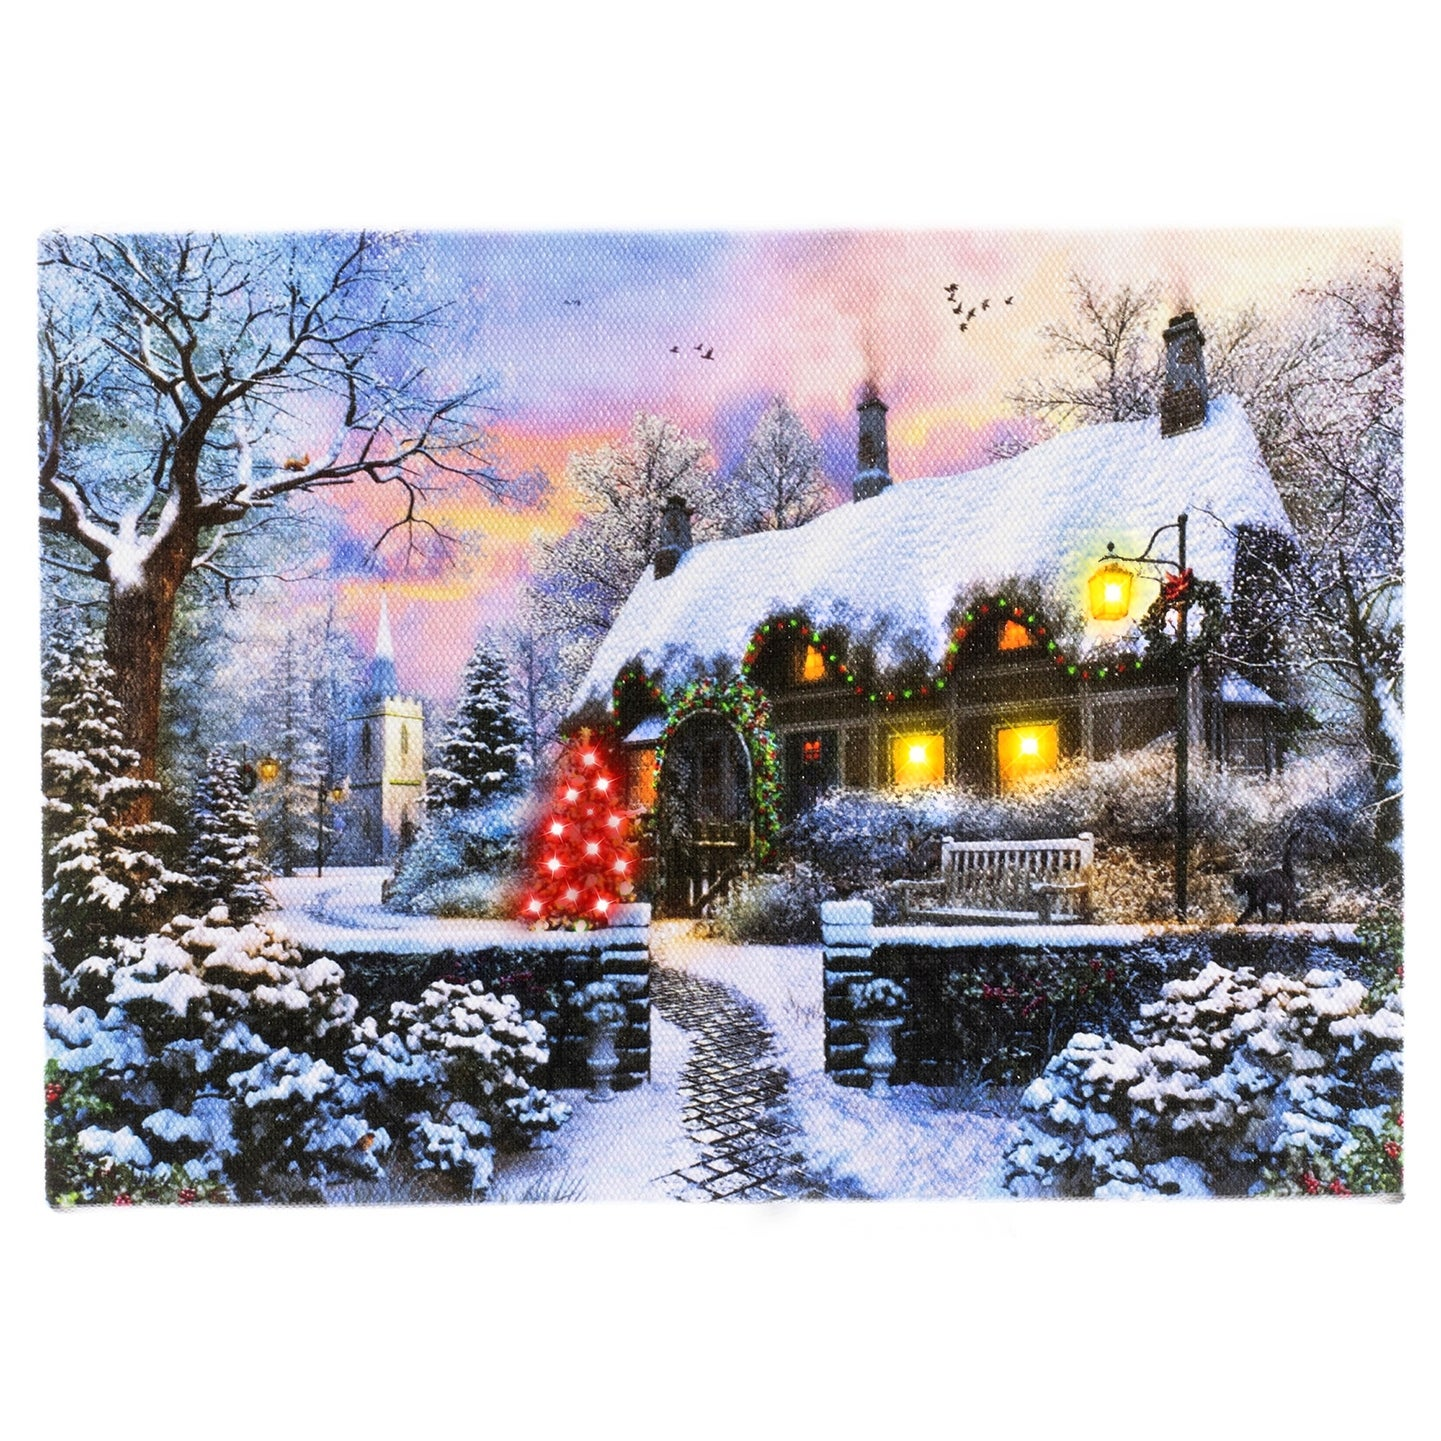 Fairy Winter House Led Lighted Canvas Wall Art 5 9 X 8 3 W Timer 5 9x8 3 Overstock 32337615